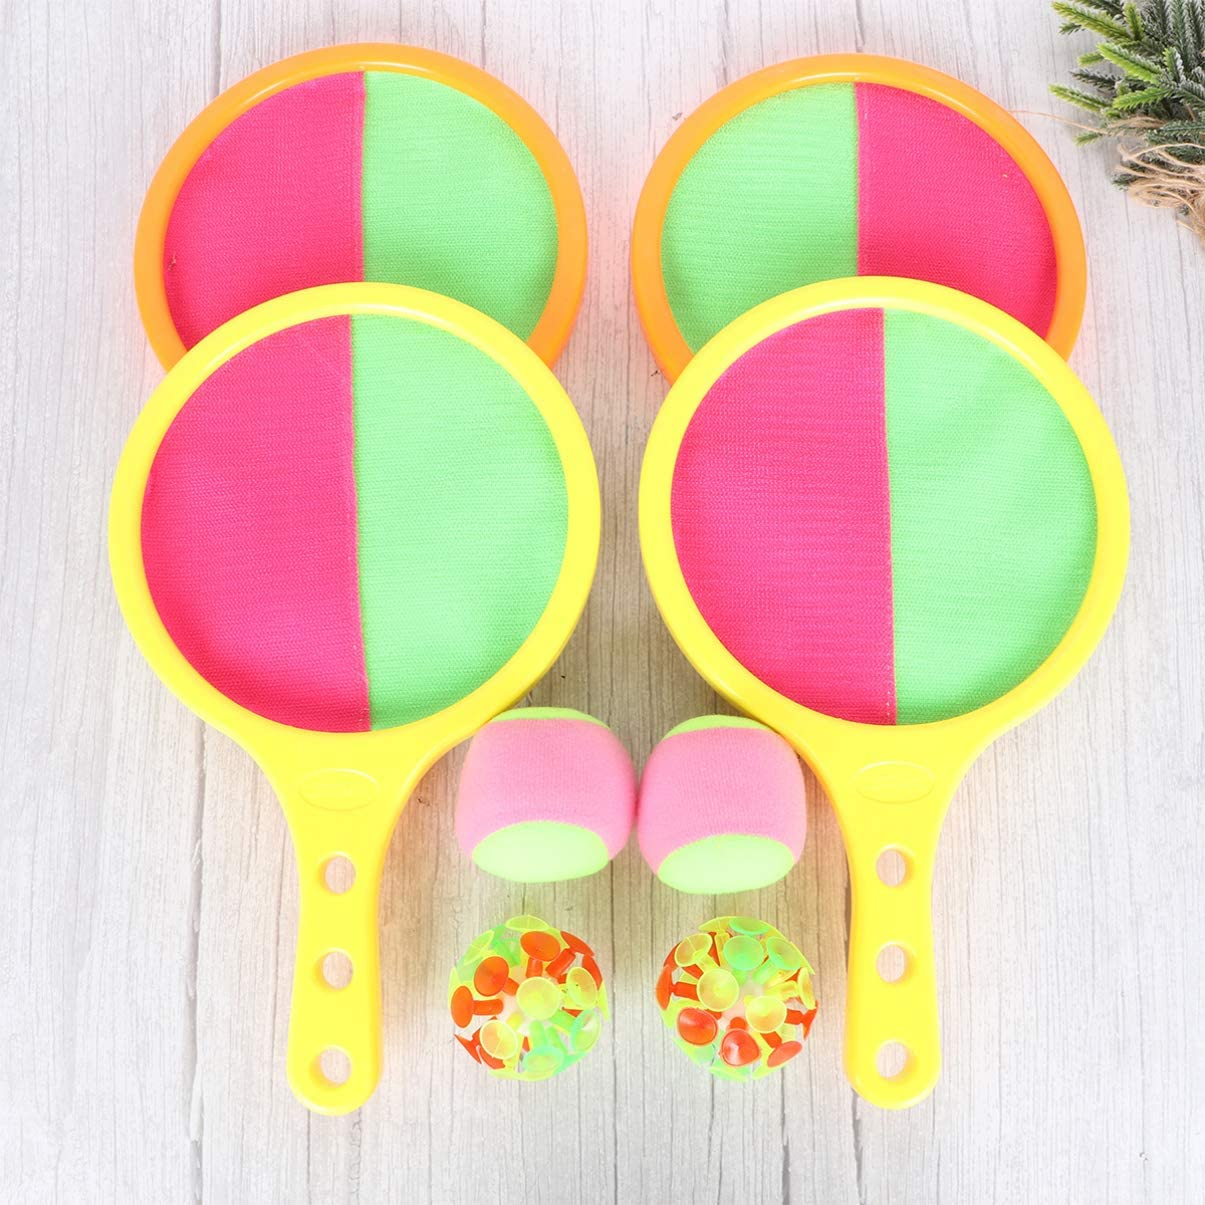 LIOOBO 2 Sets Paddle Toss and Catch Ball Set Disc Paddles and Toss Ball Sports Interactive Game for Adults Kids Random Color